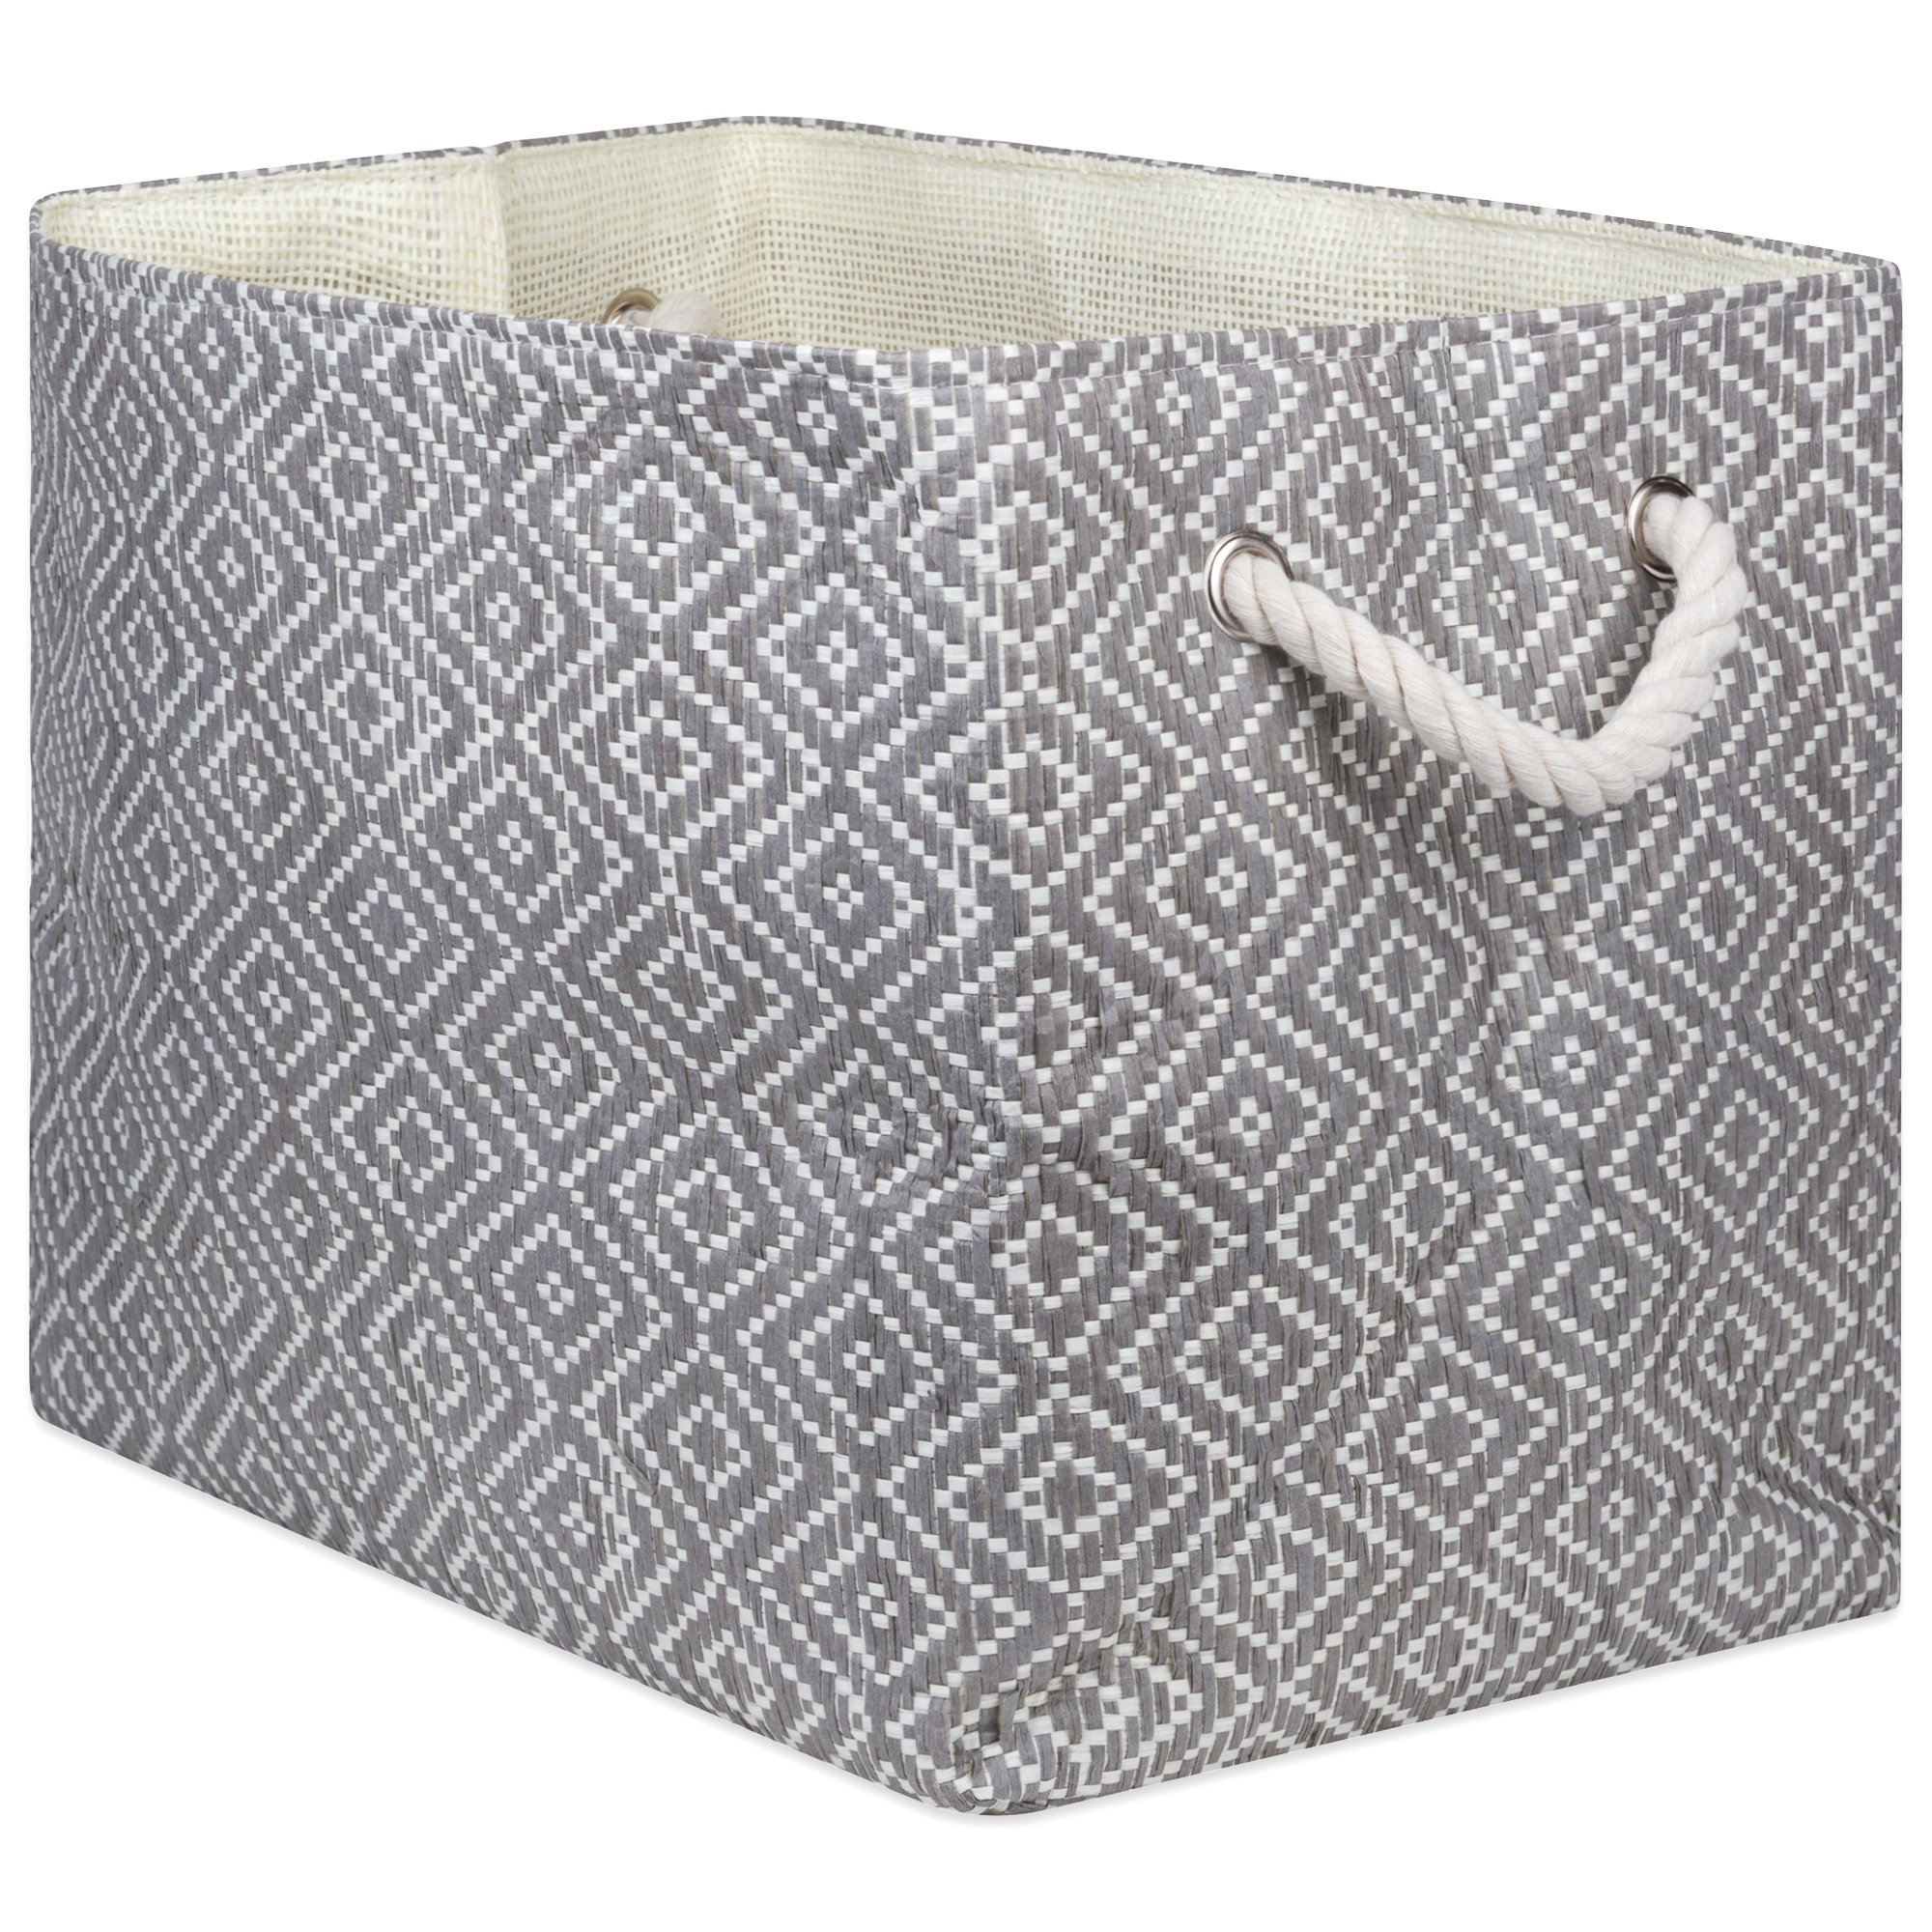 """DII Oversize Woven Paper Storage Basket or Bin, Collapsible & Convenient Home Organization Solution for Office, Bedroom, Closet, Toys, Laundry(Large - 17x12x12""""), Gray & White Diamond Basketweave by DII"""